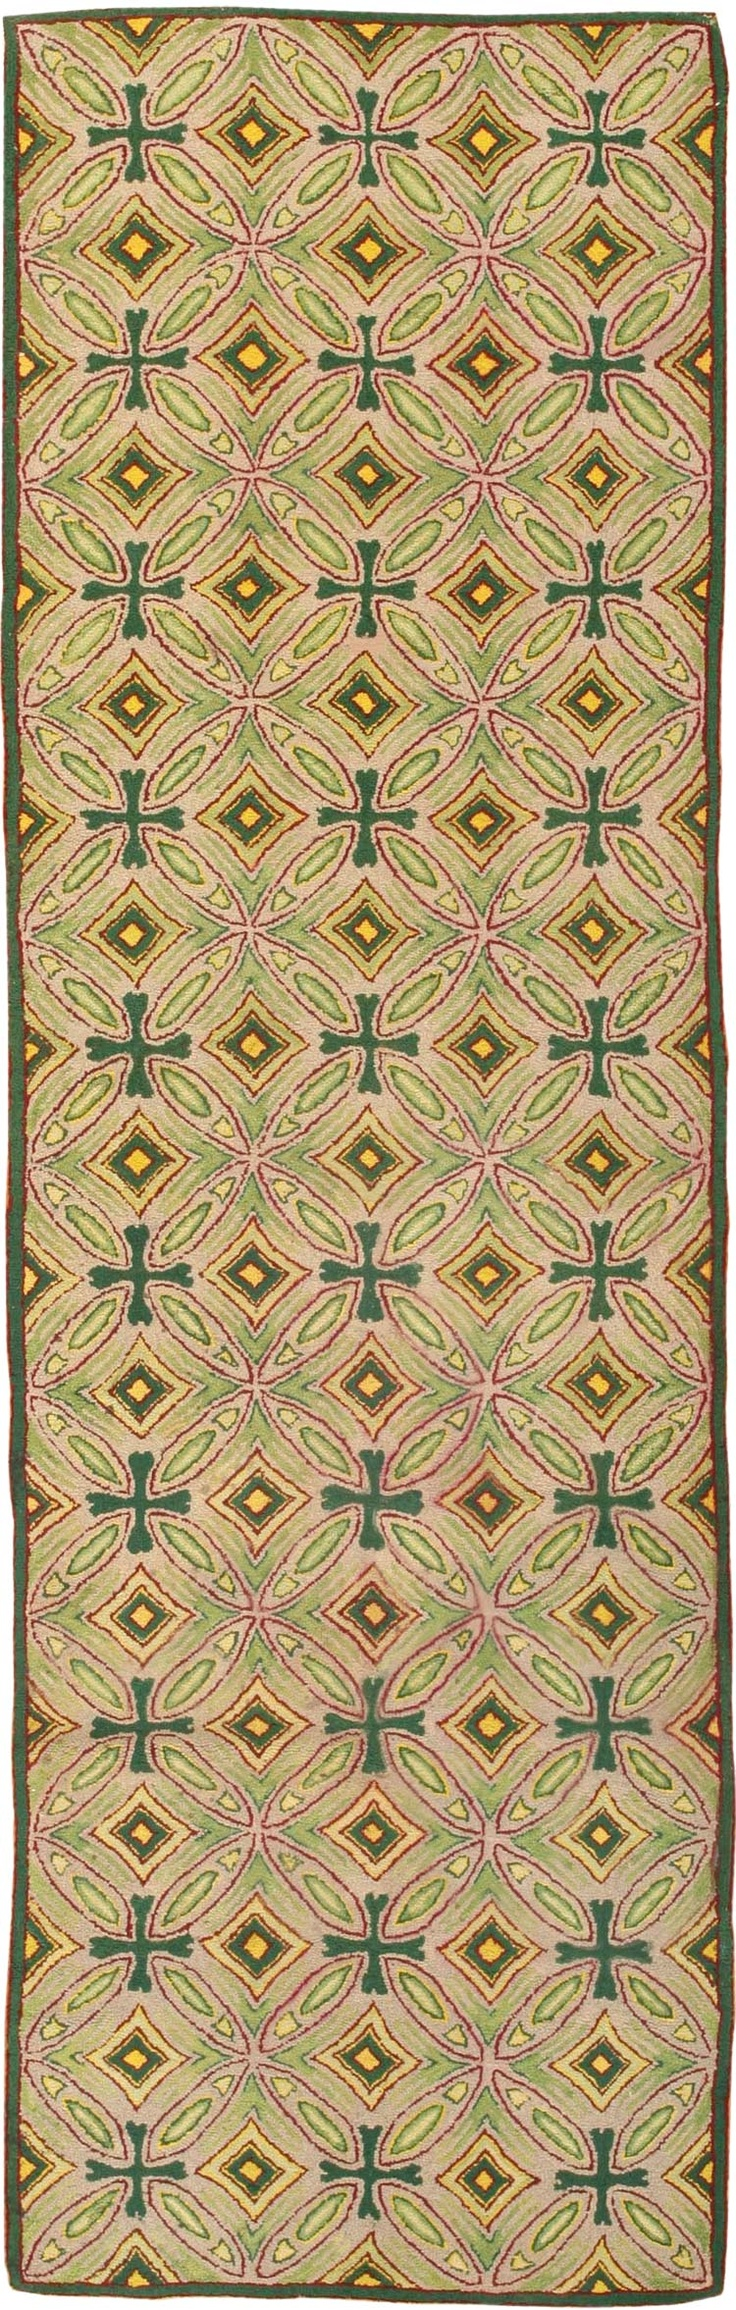 Antique Hooked American Rug 1928